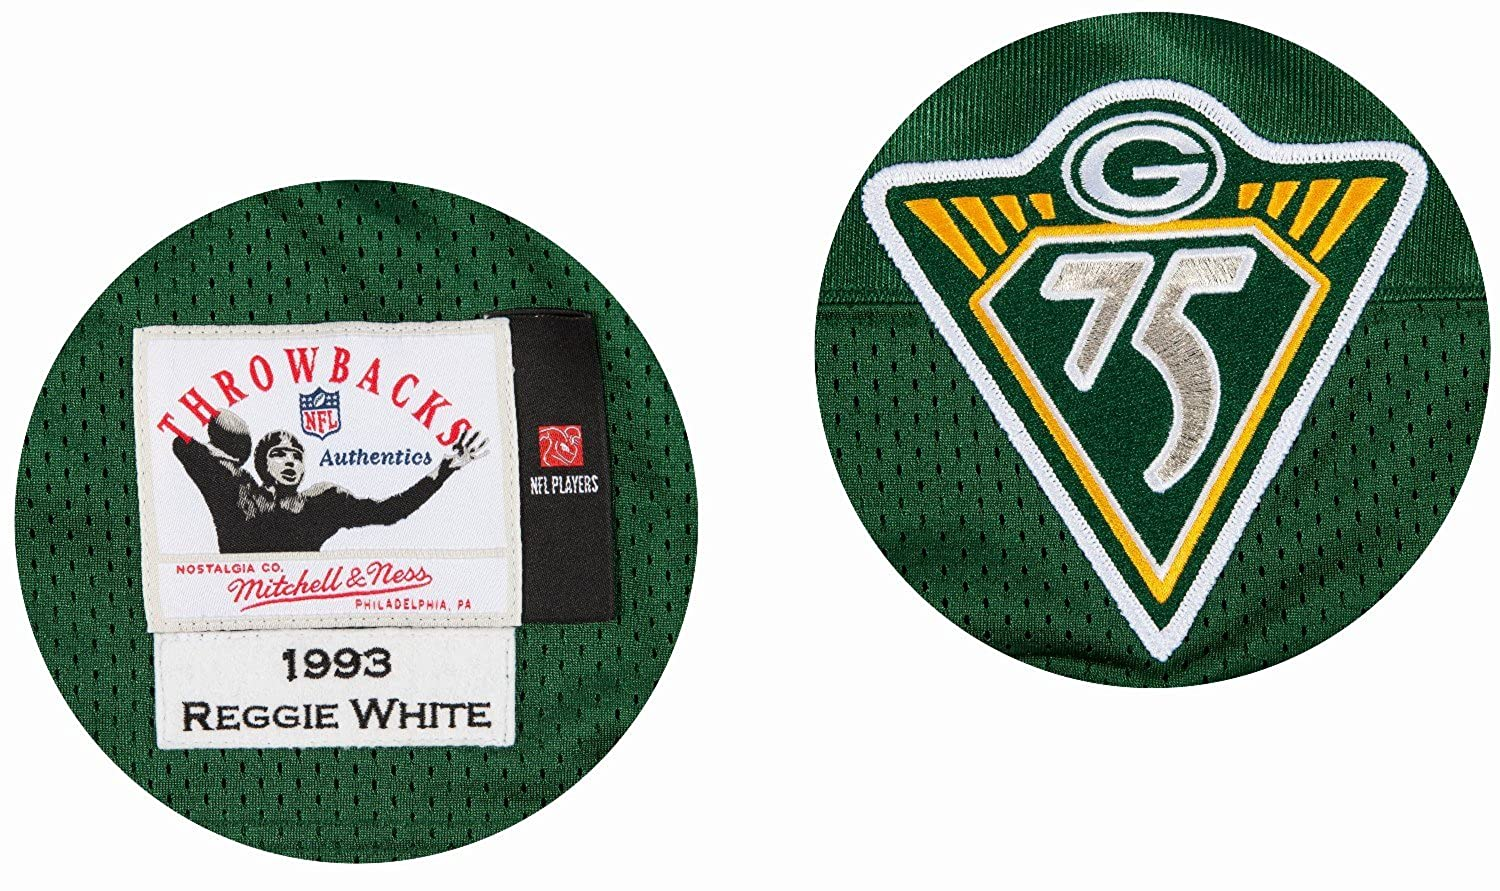 ff93553548c Amazon.com  Mitchell   Ness Reggie White Green Bay Packers Authentic 1993  Green NFL Jersey  Sports   Outdoors